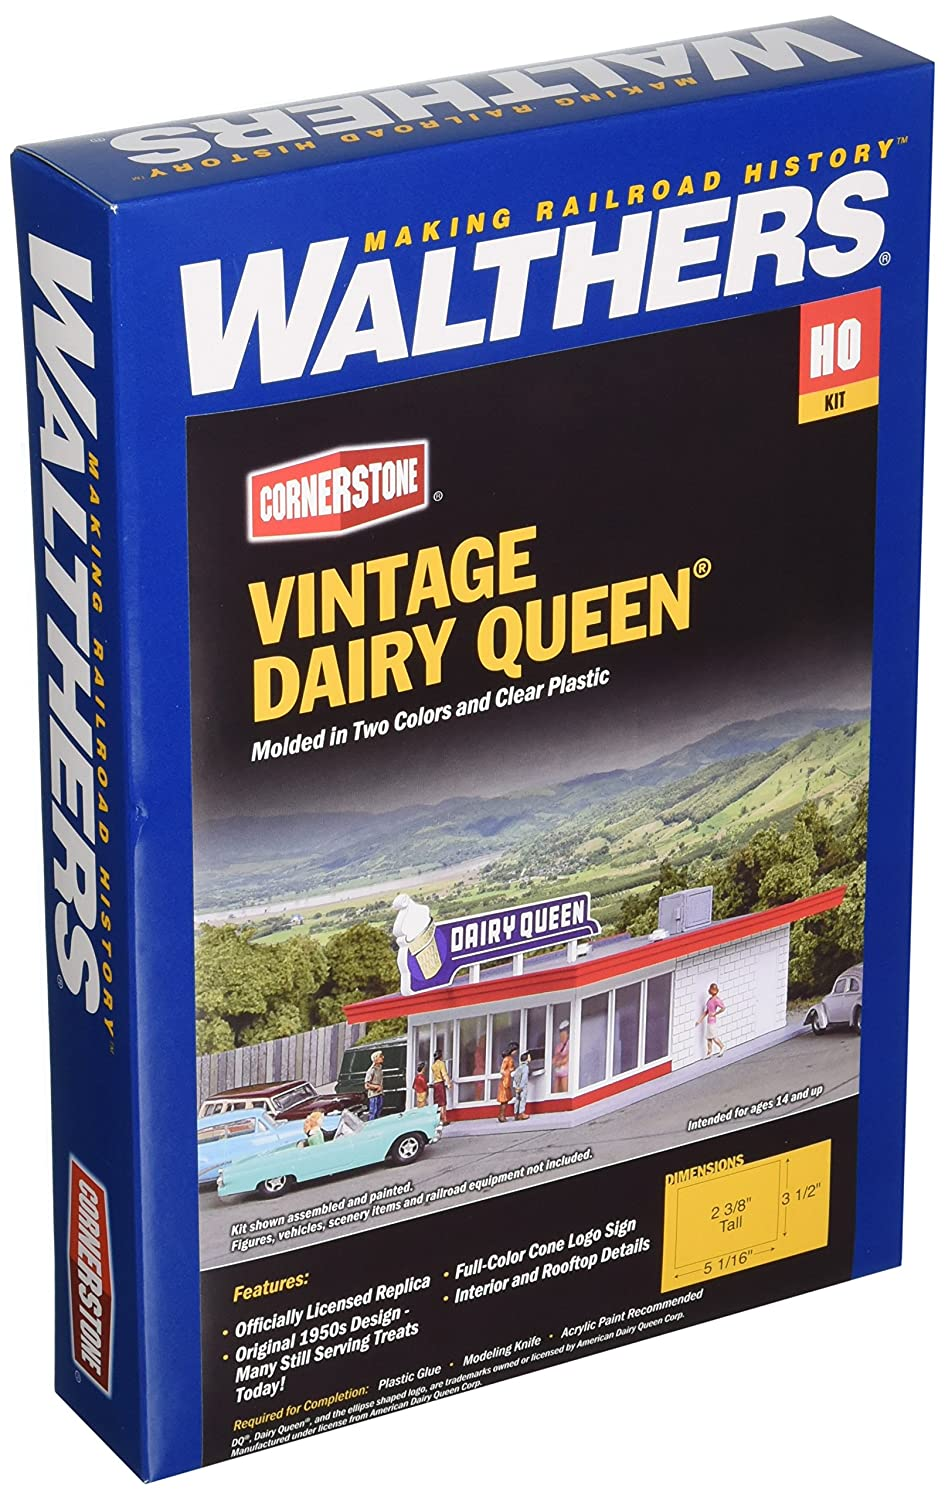 Walthers Inc. Vintage Dairy Queen Kit 5 1 16 x 3 1 2 X 2 3 8 12.8 x 6cm